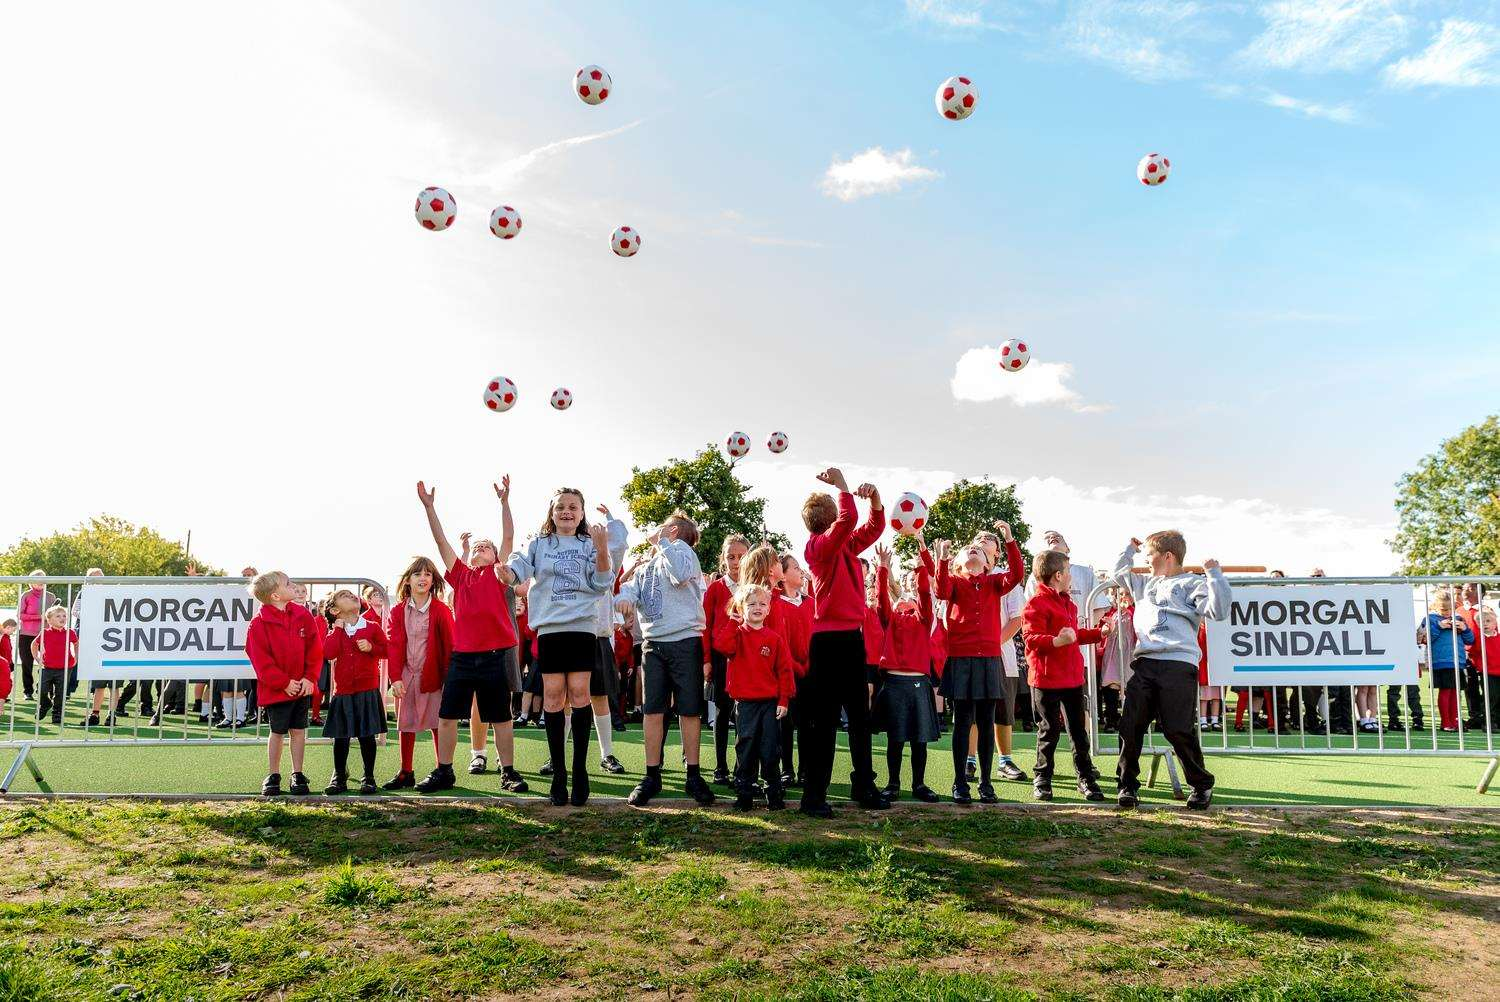 GAME ON: Pupils at Roydon Primary School were in jubilant mood. Picture by Mike Norman of Maxim Photography.